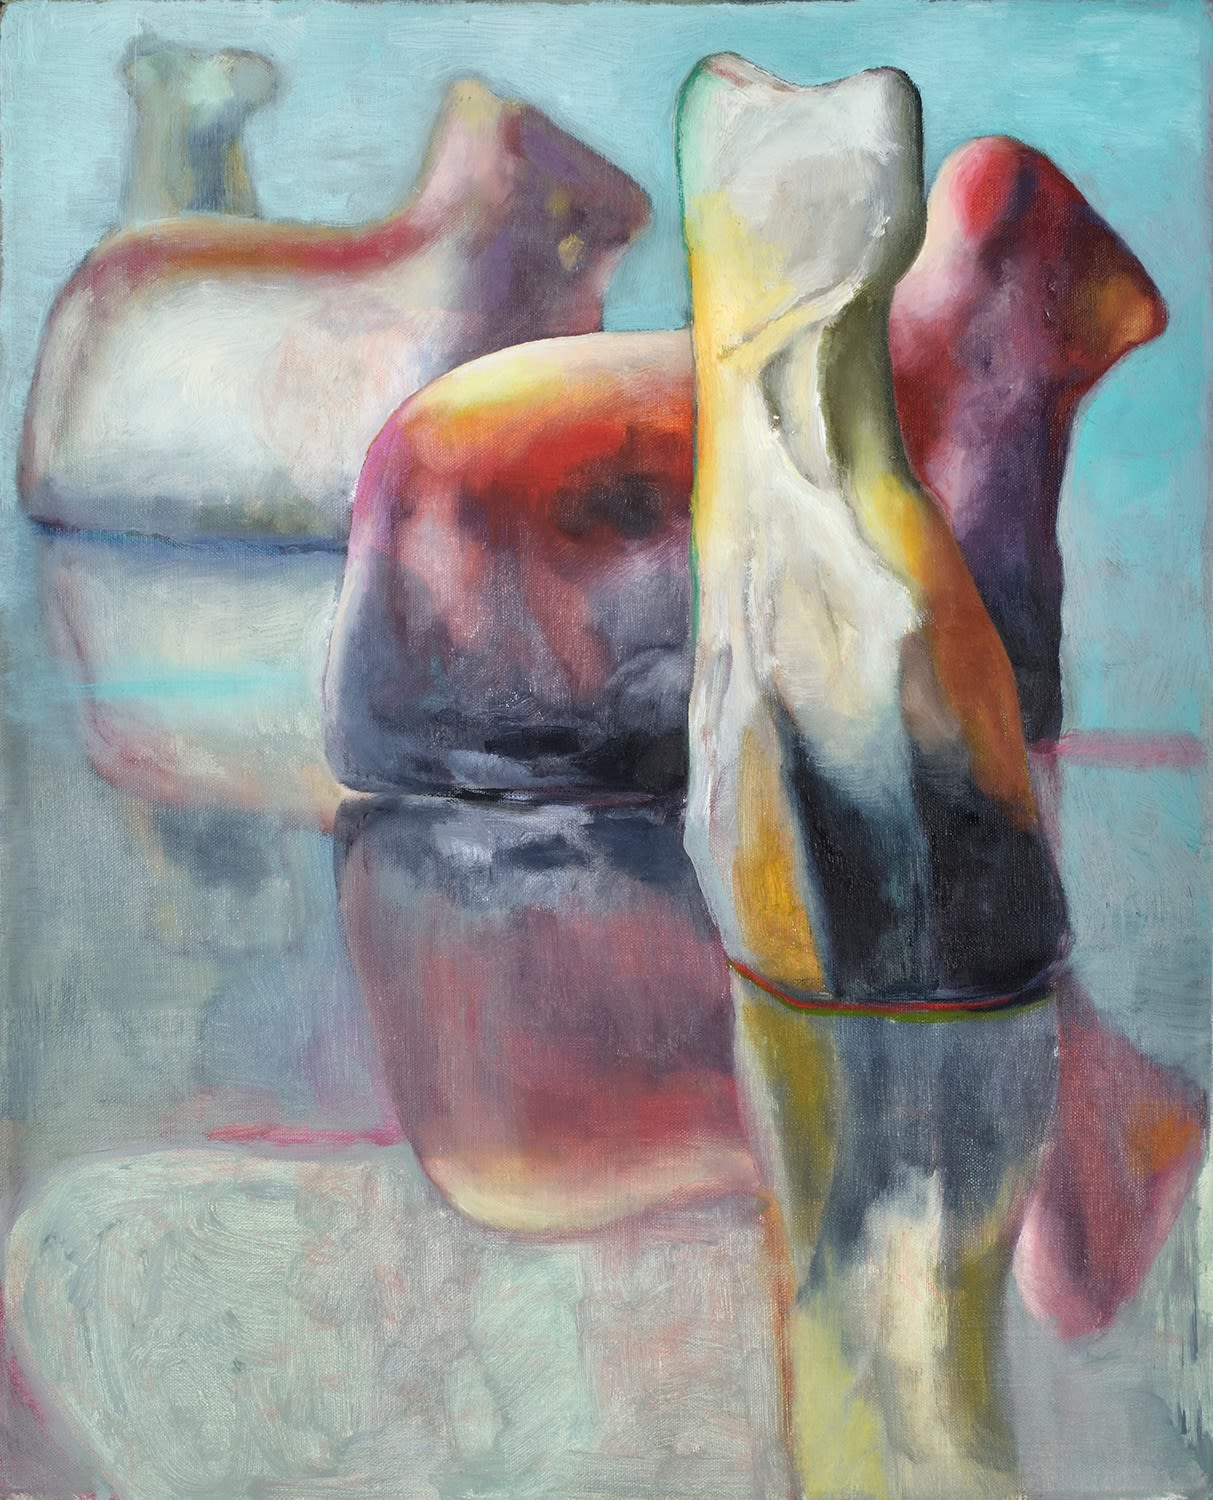 Tender Cold 2021 Oil on canvas 41 x 33 cm